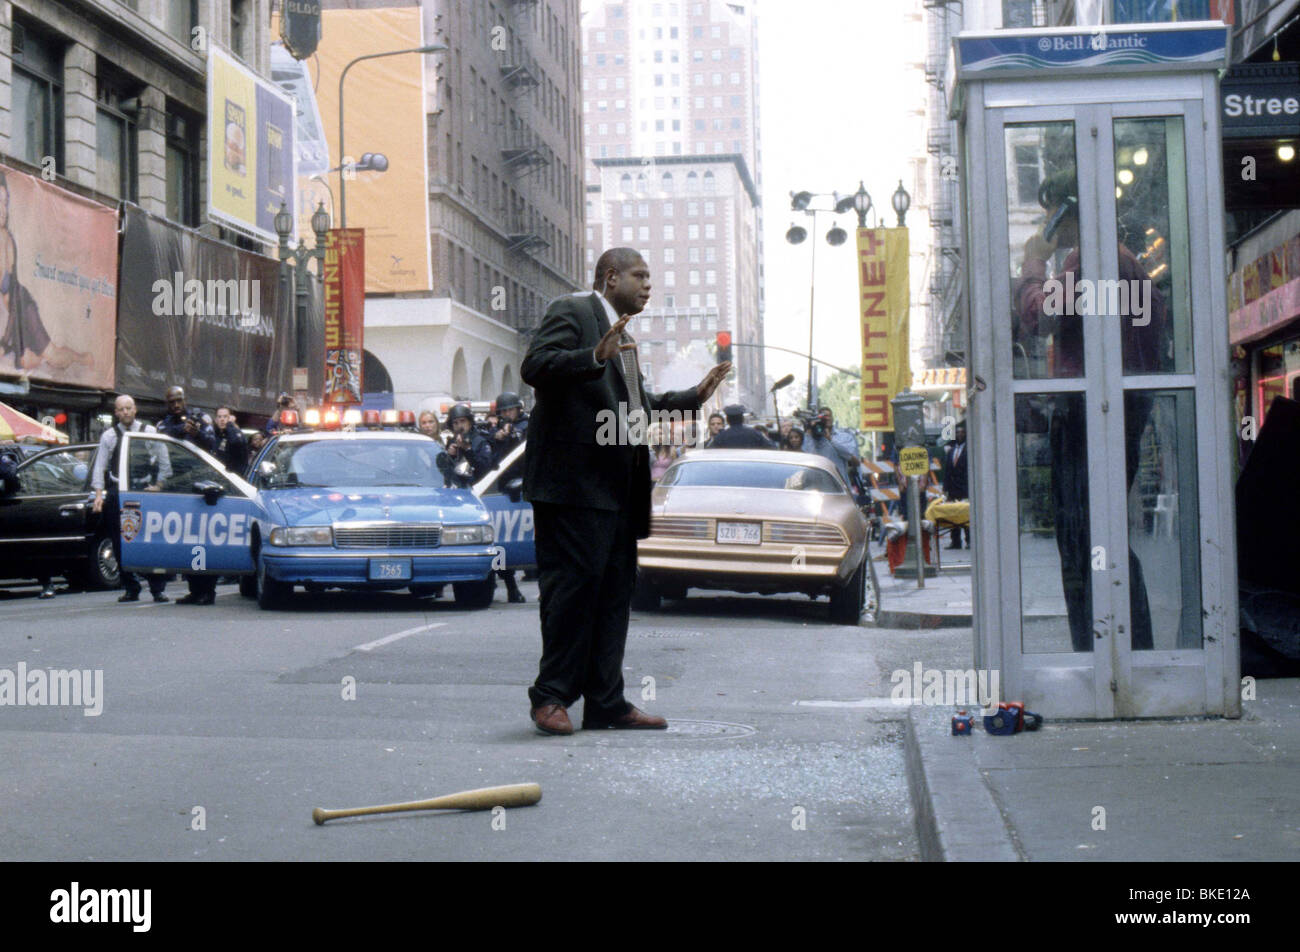 PHONE BOOTH (2001) FORREST WHITAKER PHBO 001-PB-152R - Stock Image